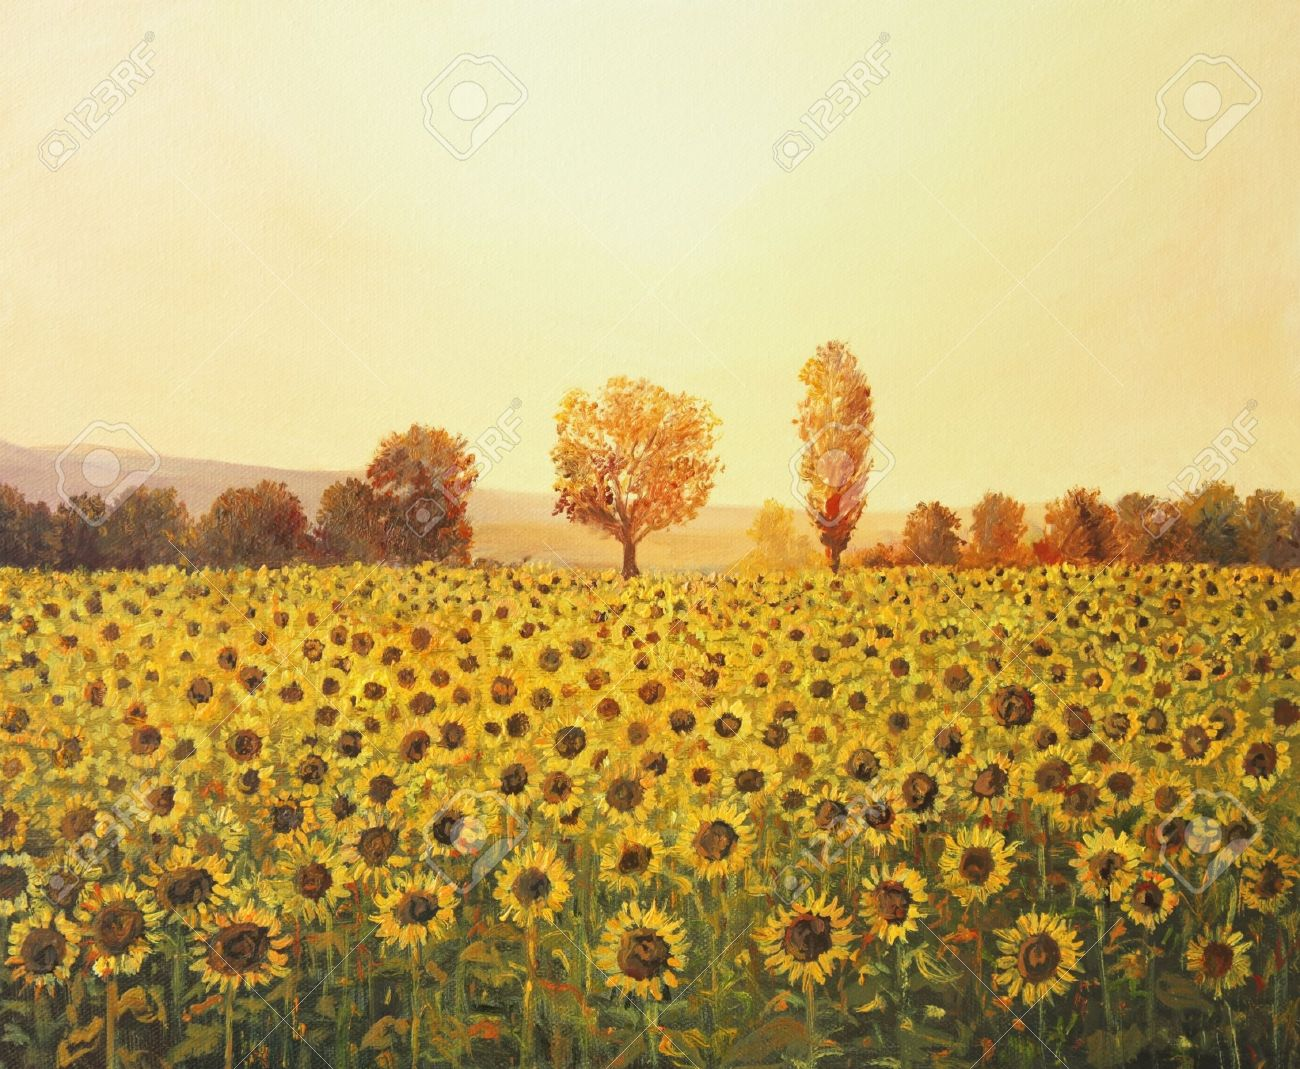 Sunflowers Field At Sunset Painted On The Canvas By Me Kiril Stanchev Stock Photo